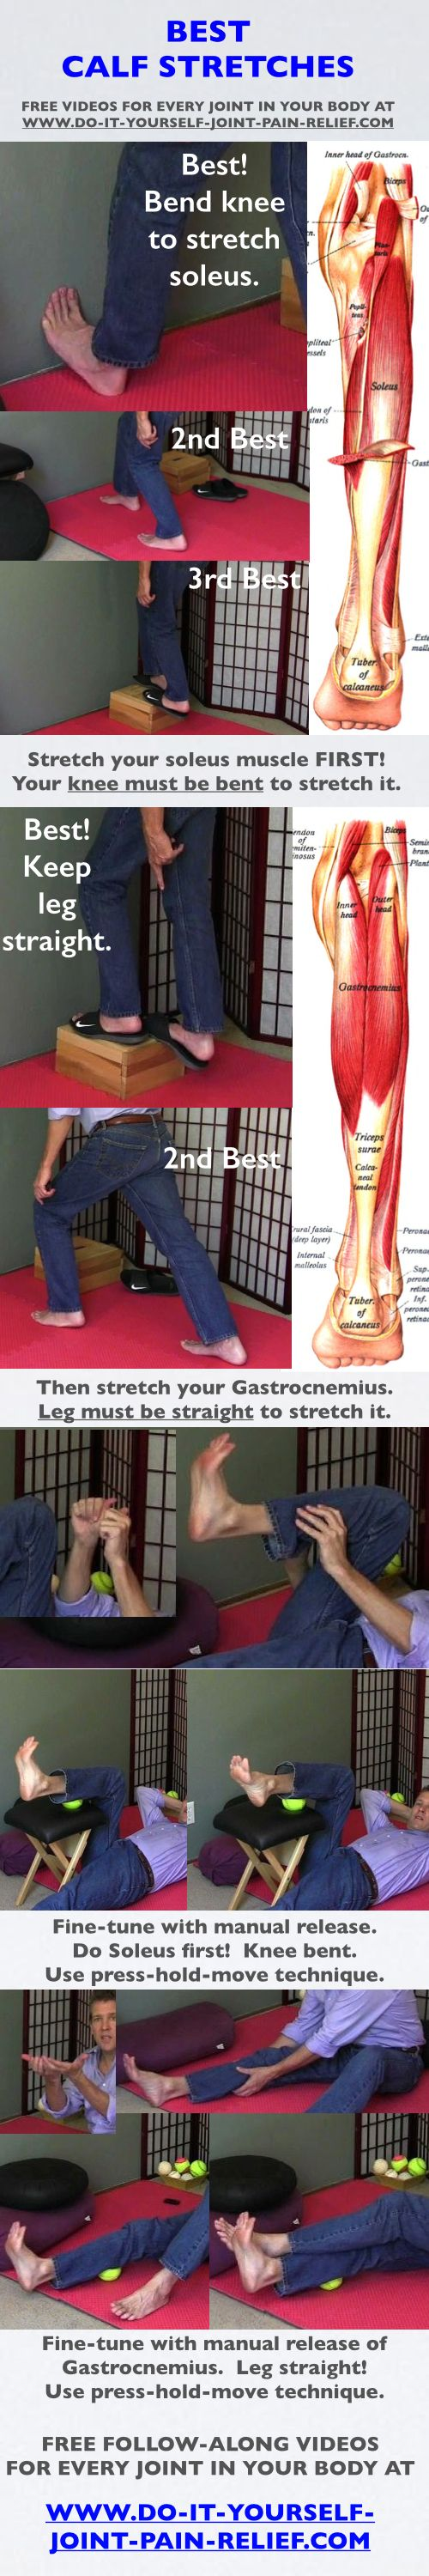 Best Calf Stretches - Learn the secret to an effective calf stretch!